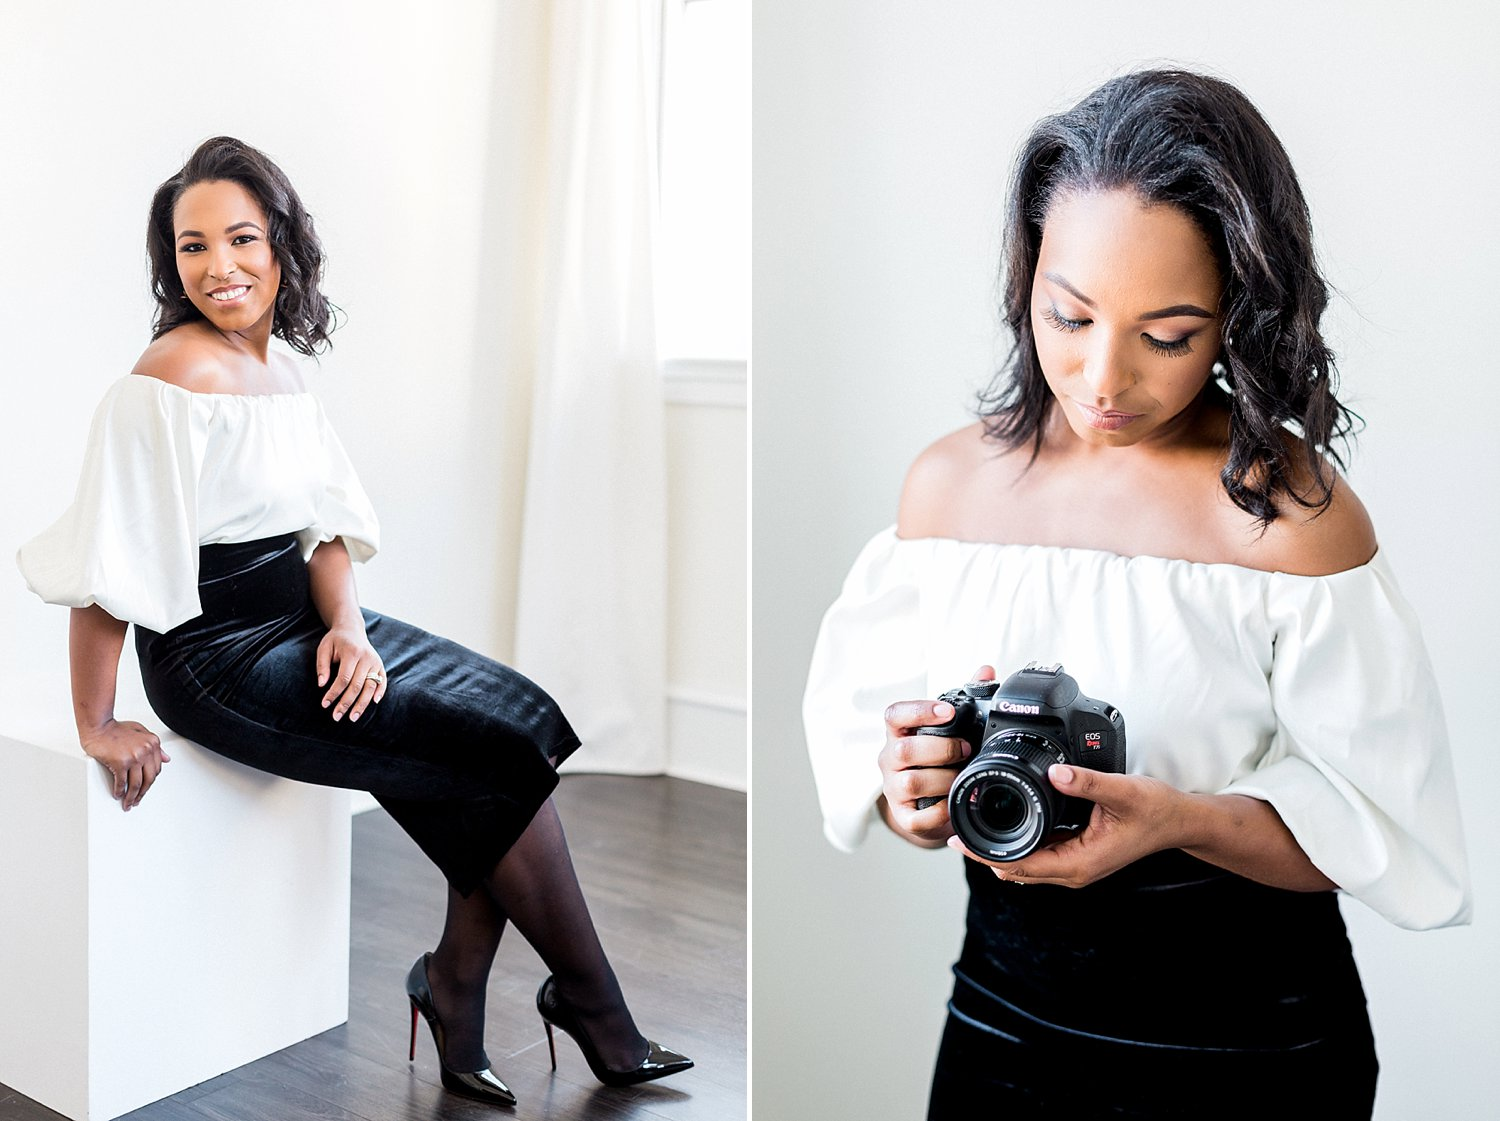 personal branding photo of creative female entrepreneur holding a canon camera in her hands